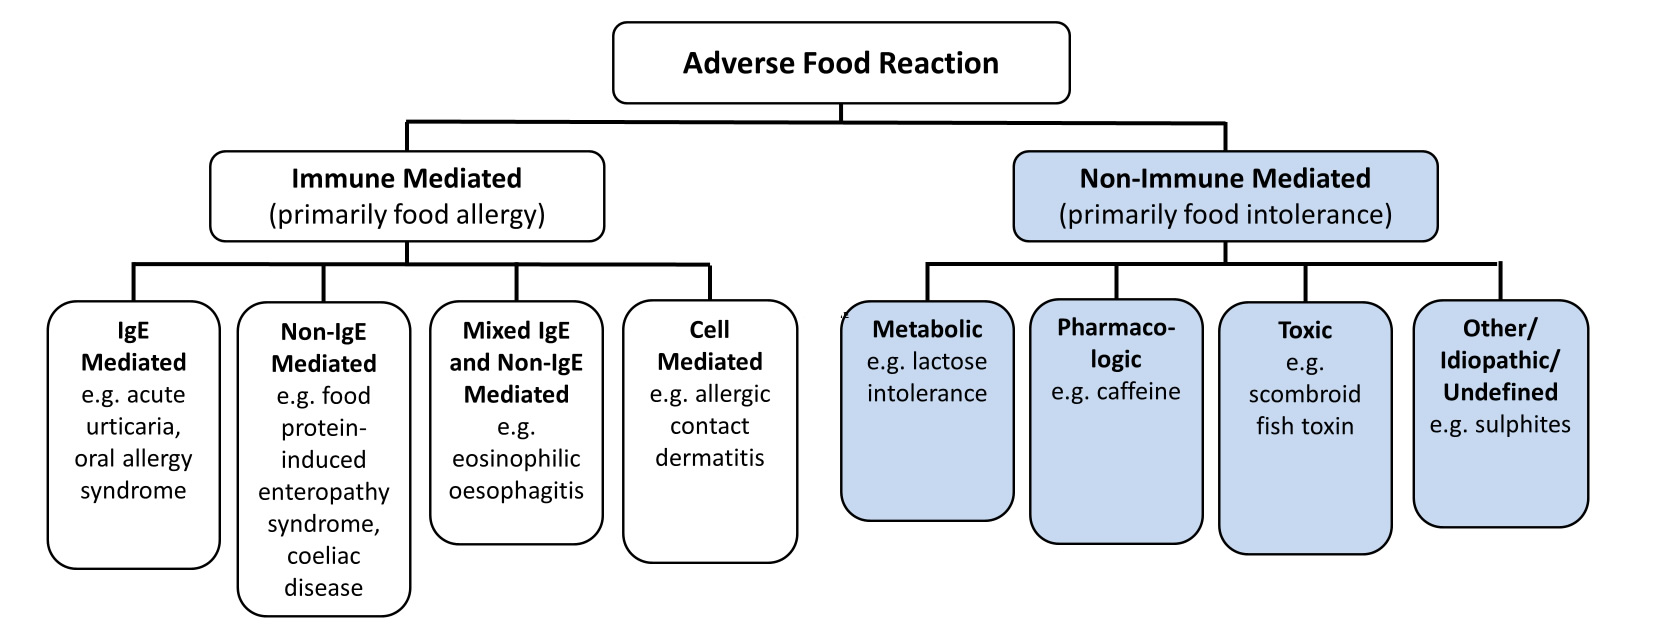 Adverse food reaction